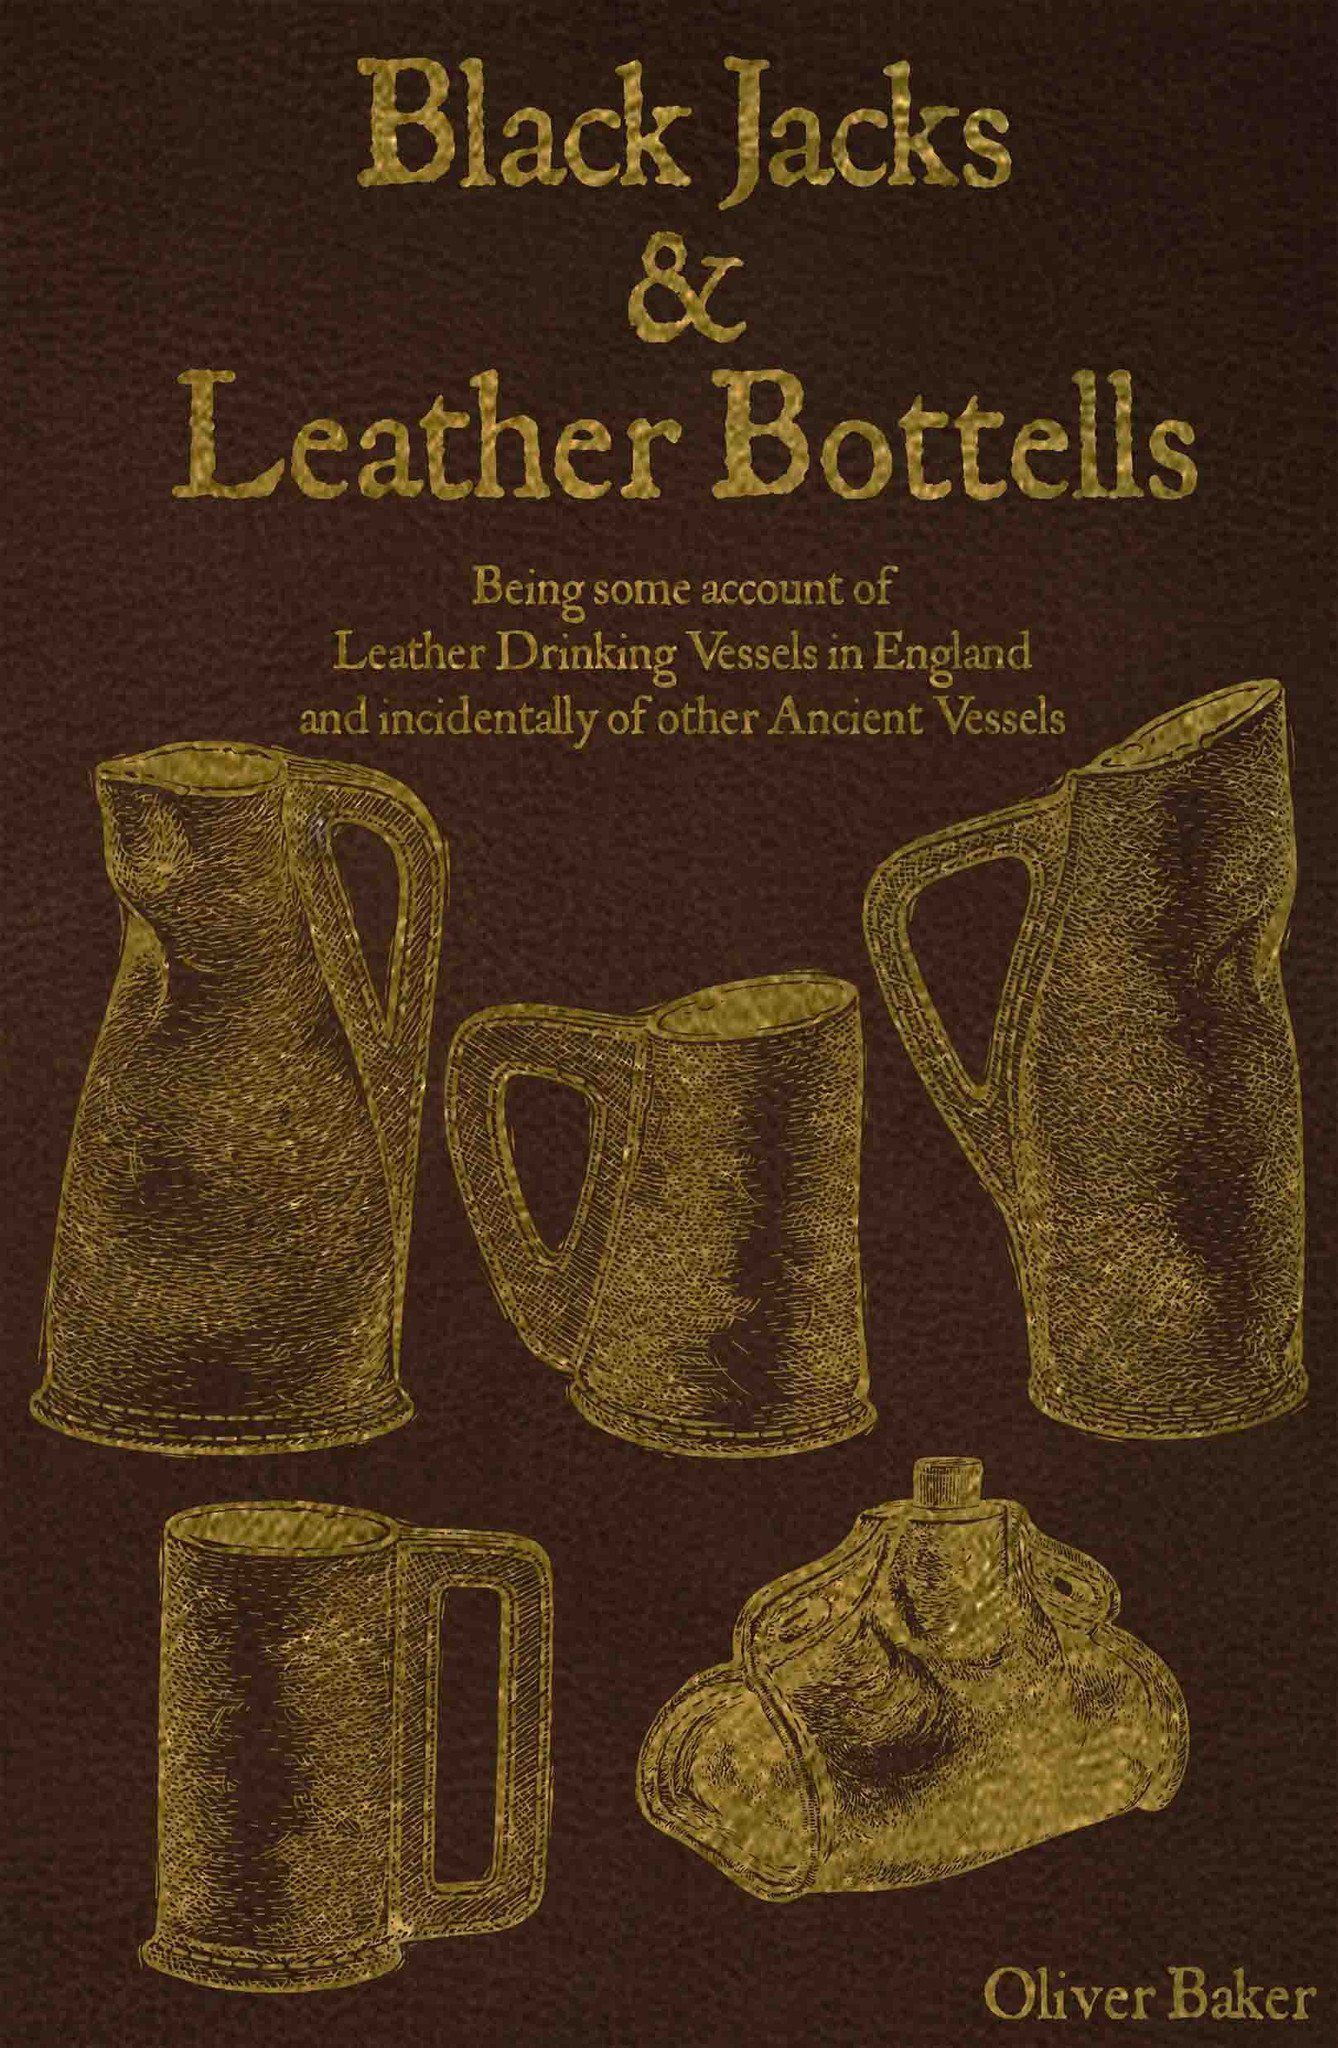 Black Jacks and Leather Bottells - Samson Historical